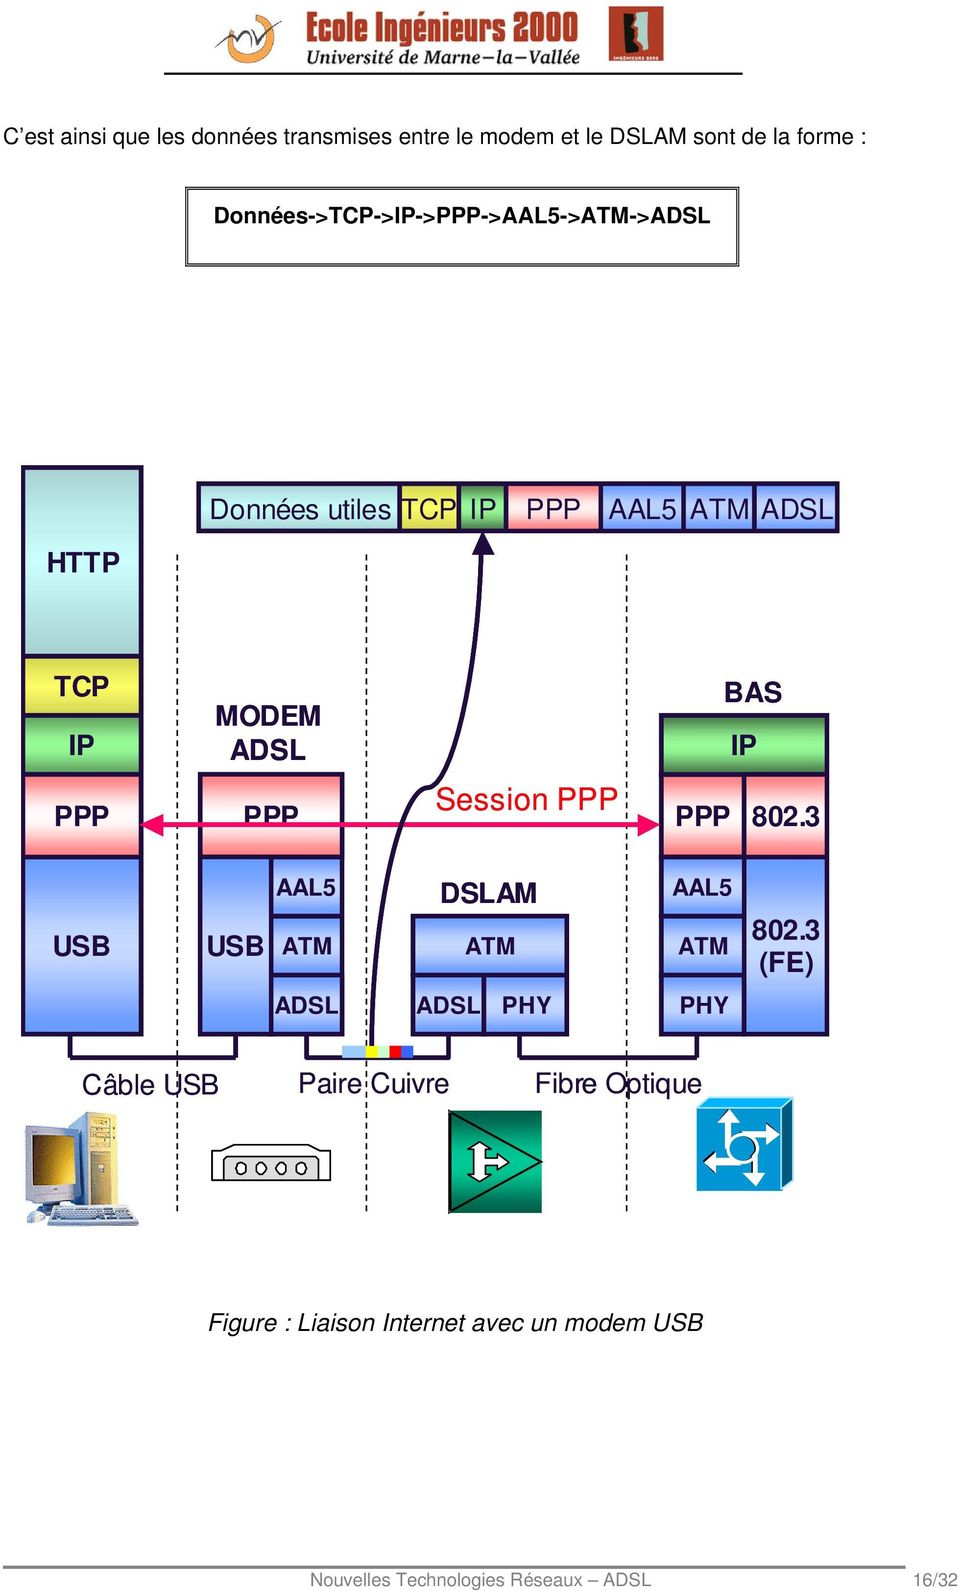 BAS IP PPP PPP Session PPP PPP 802.3 USB USB AAL5 ATM DSLAM ATM AAL5 ATM 802.